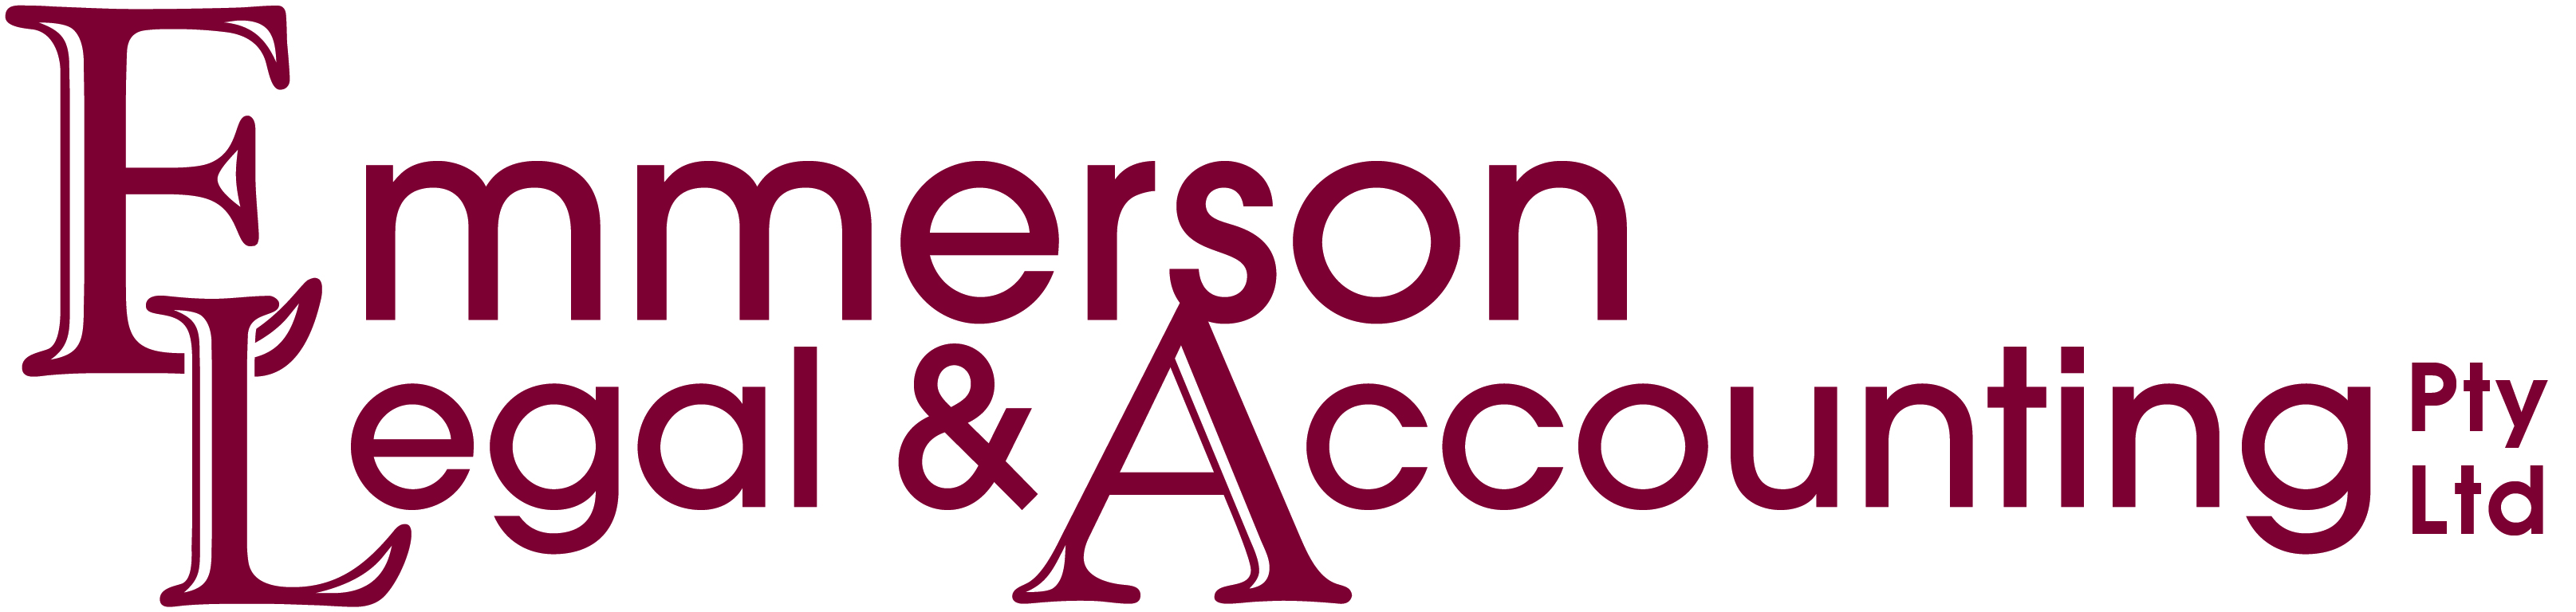 Emmerson Legal and Accounting Logo